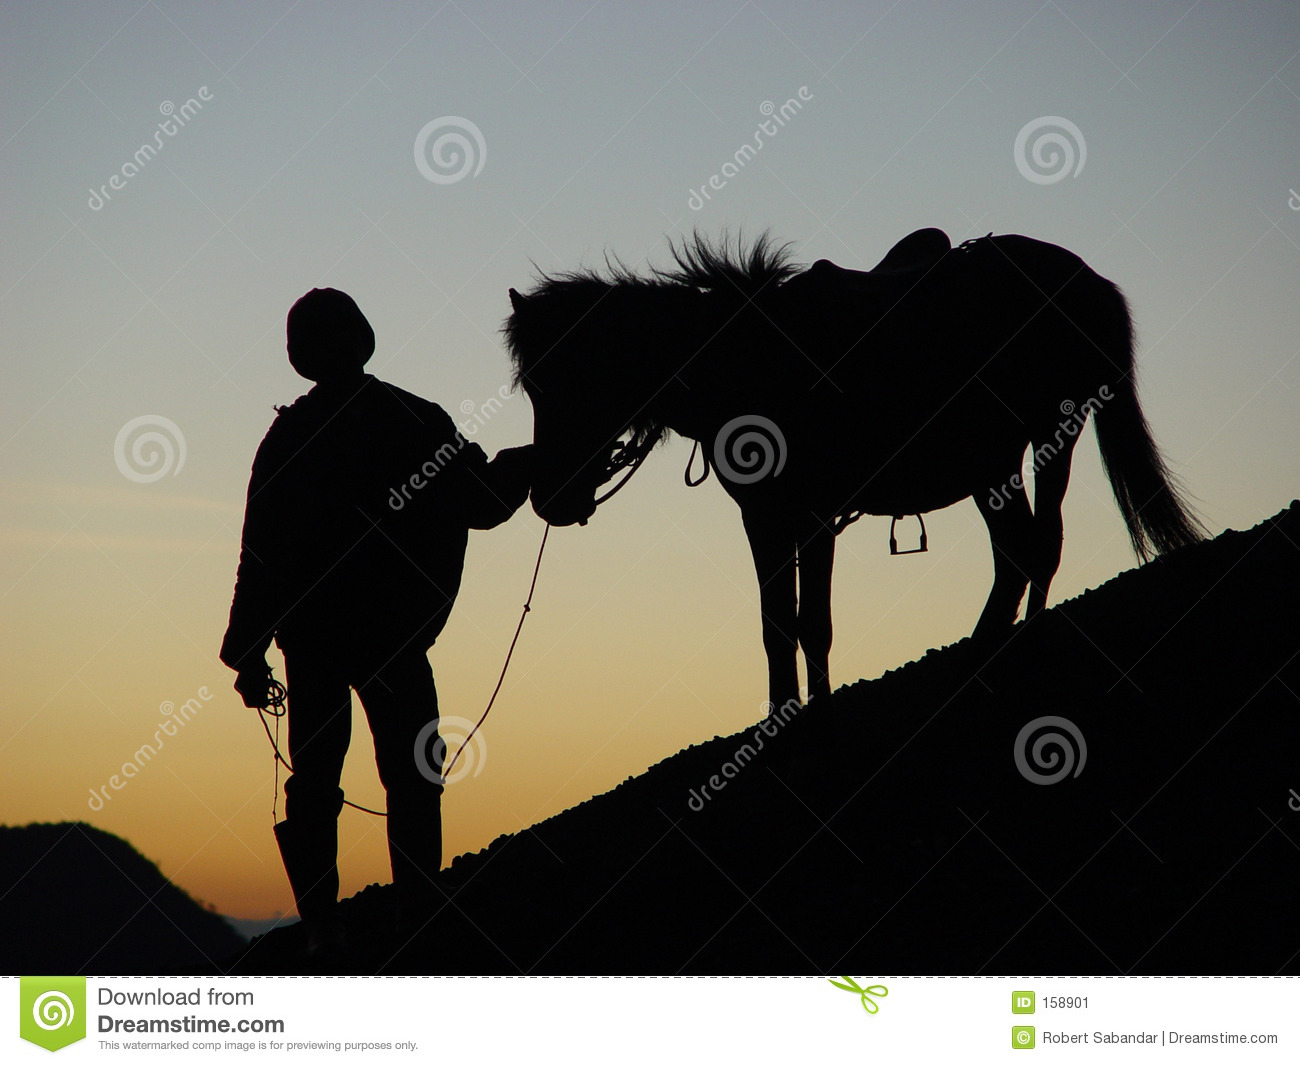 Silhoutte of Man and Horse